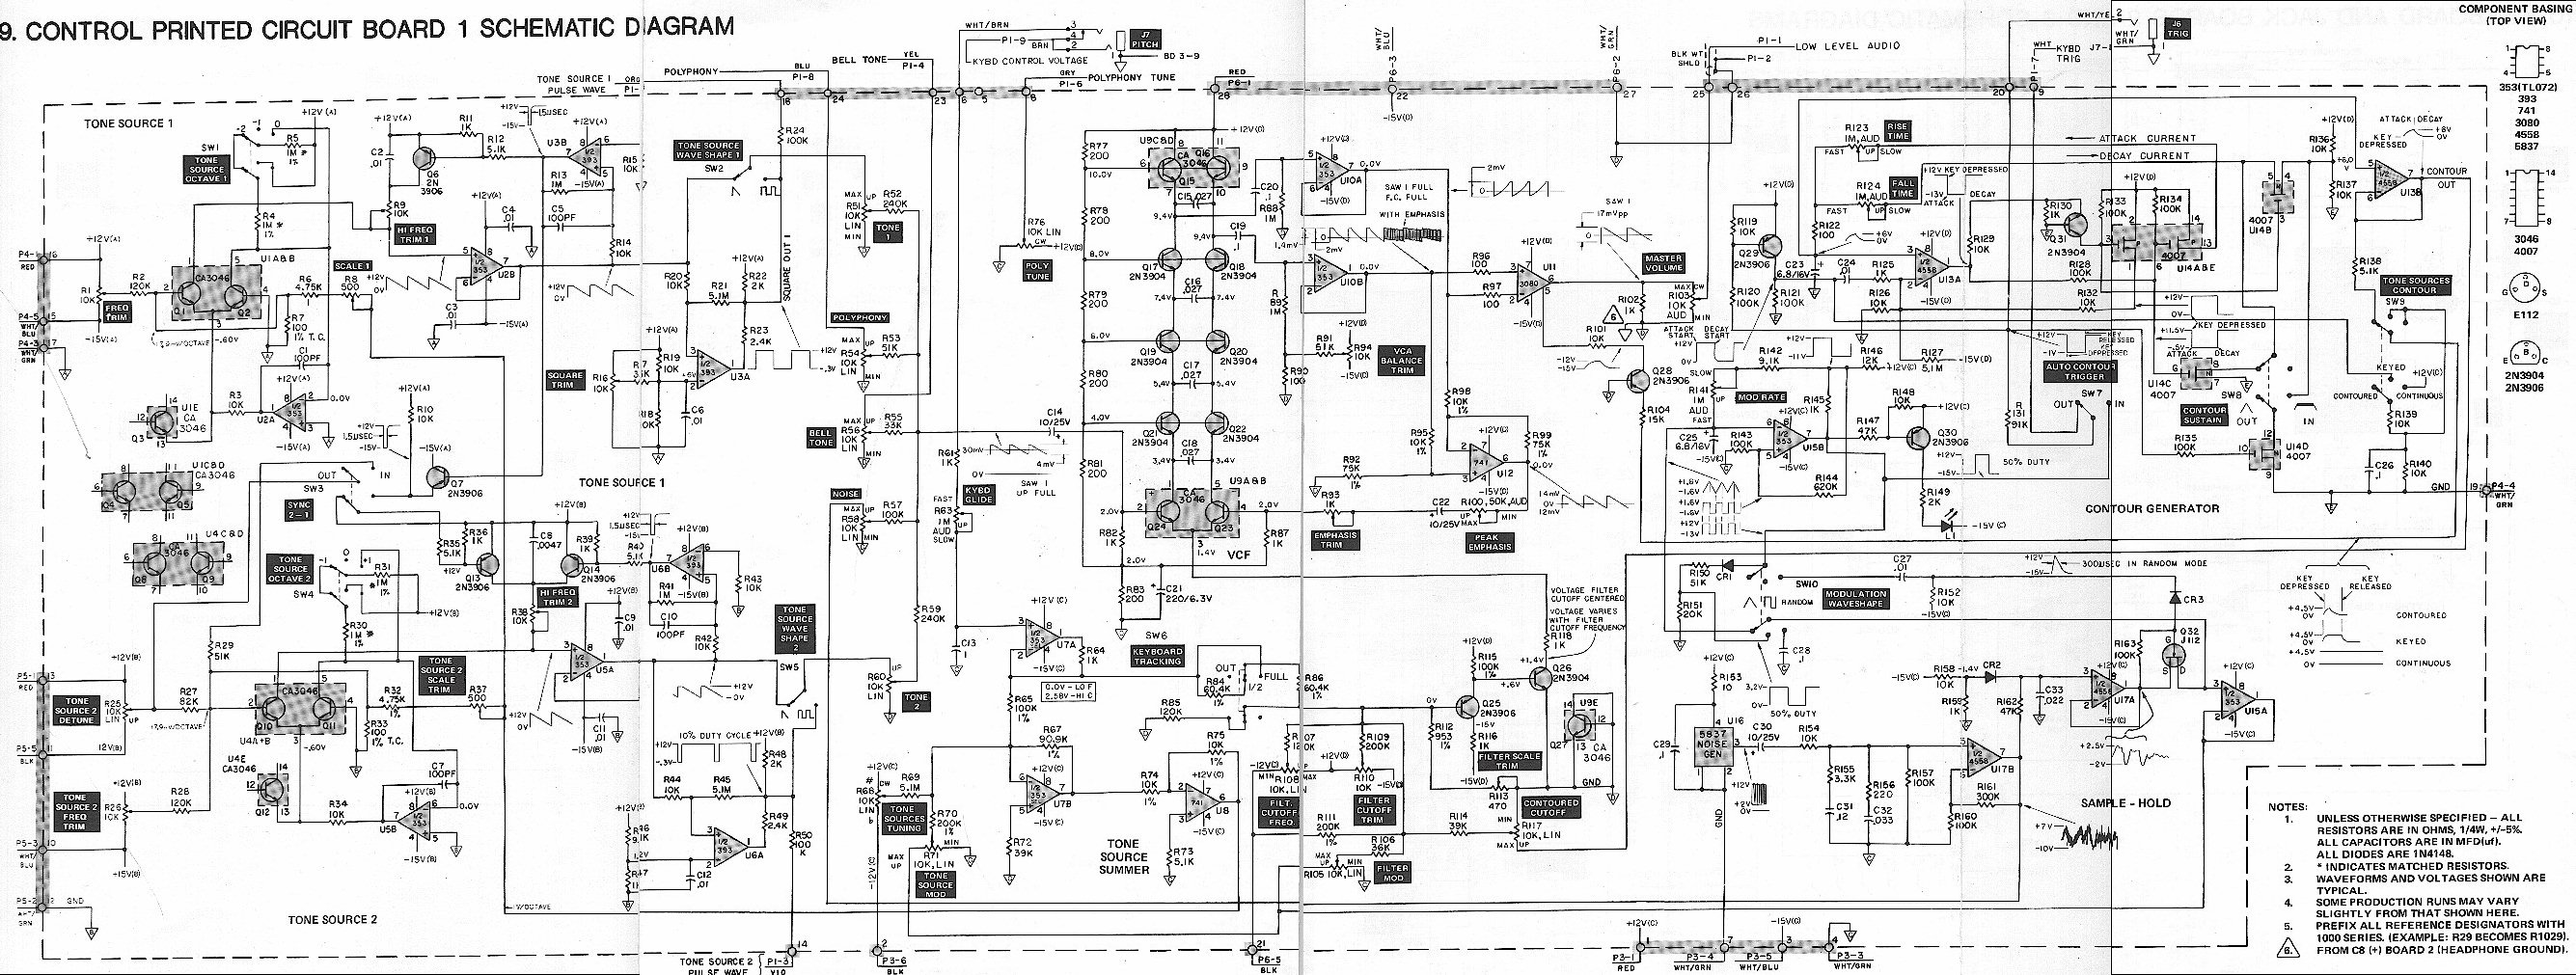 Radio Shack Concertmate MG-1 Schematics: